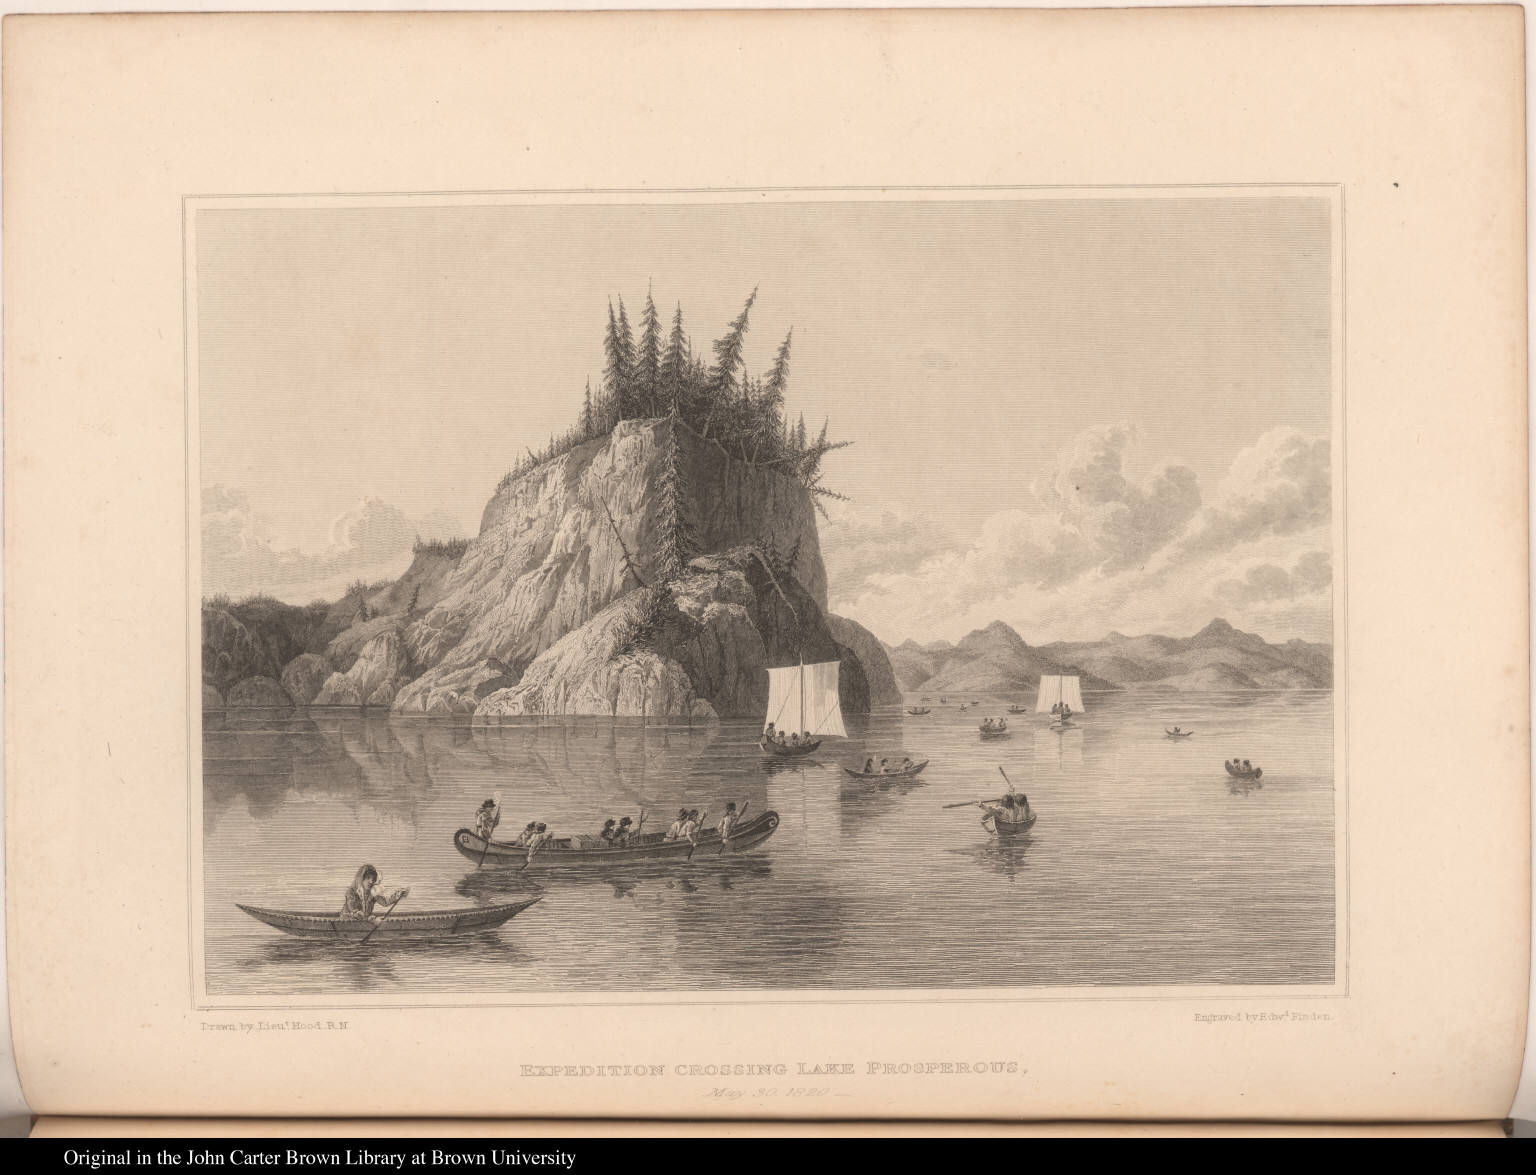 Expedition Crossing Lake Prosperous. May 30, 1820.